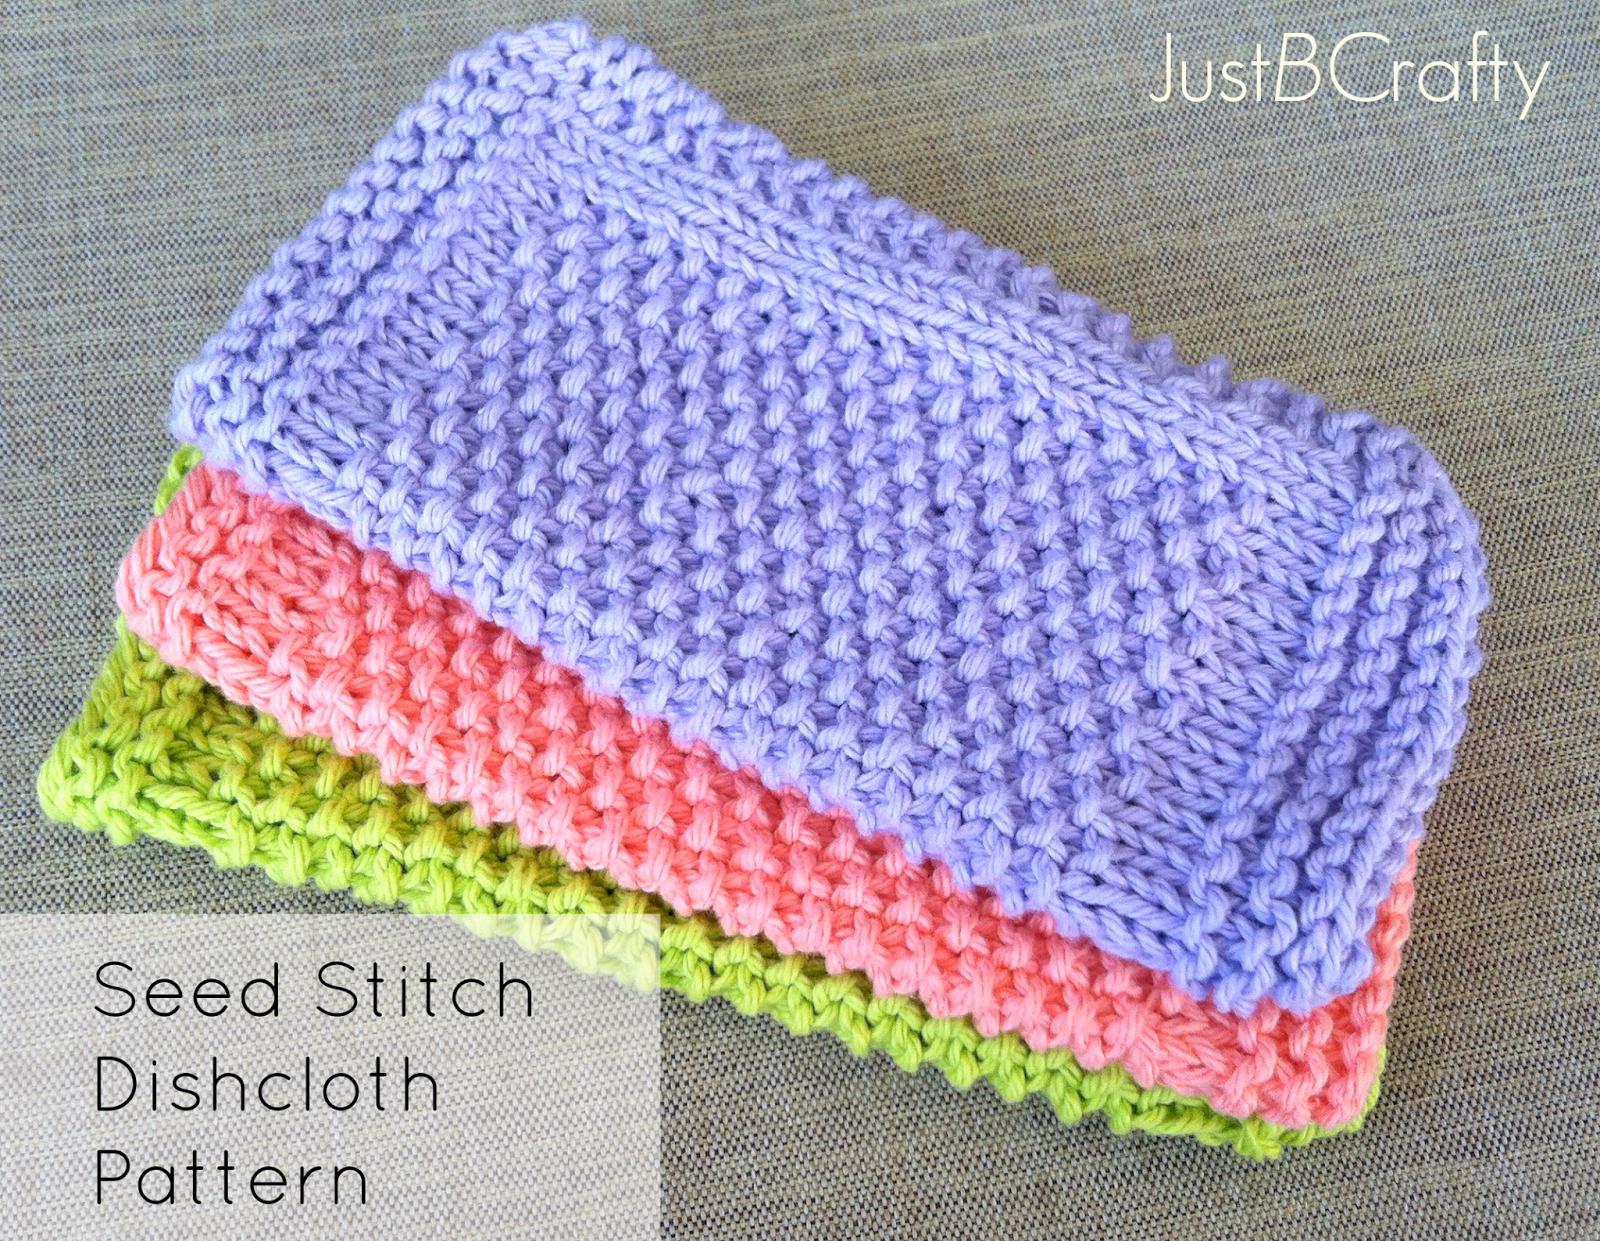 Just b crafty beginner knit or crochet it pinterest seed find this pin and more on knit or crochet it seed stitch dishcloth pattern bankloansurffo Choice Image